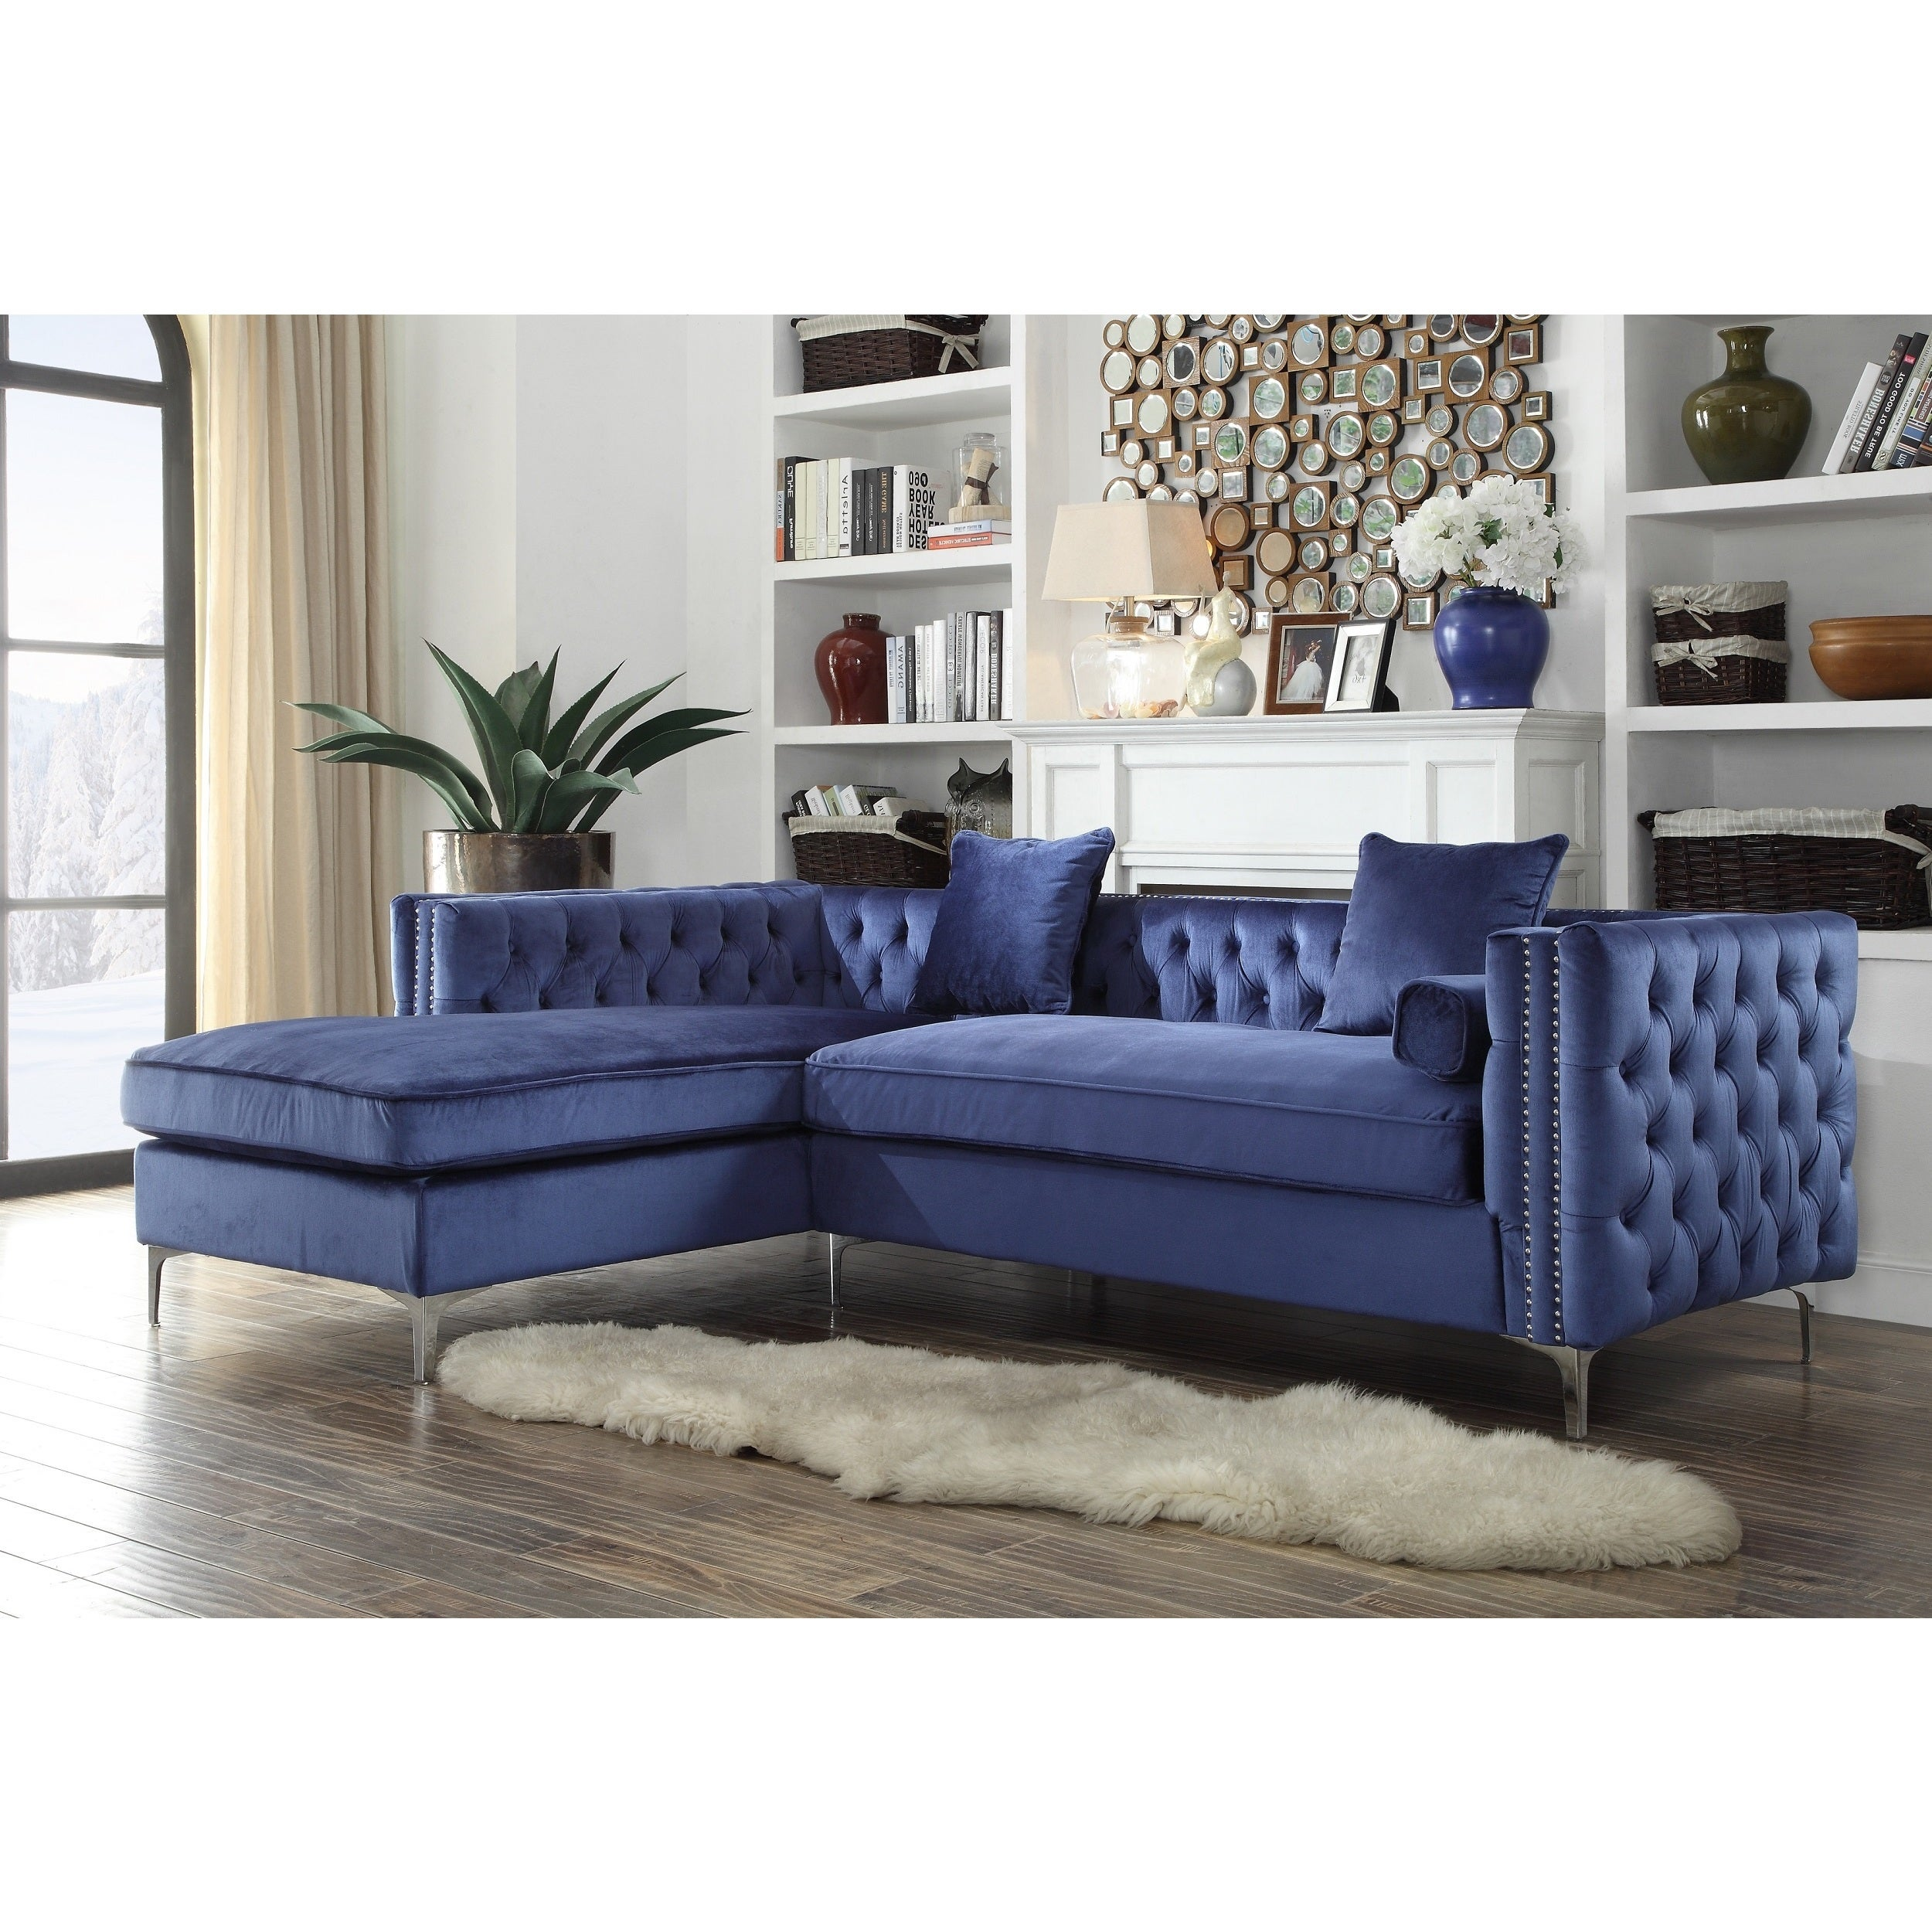 Chic Home Monet Velvet Silver Left Facing Sectional Sofa, Navy